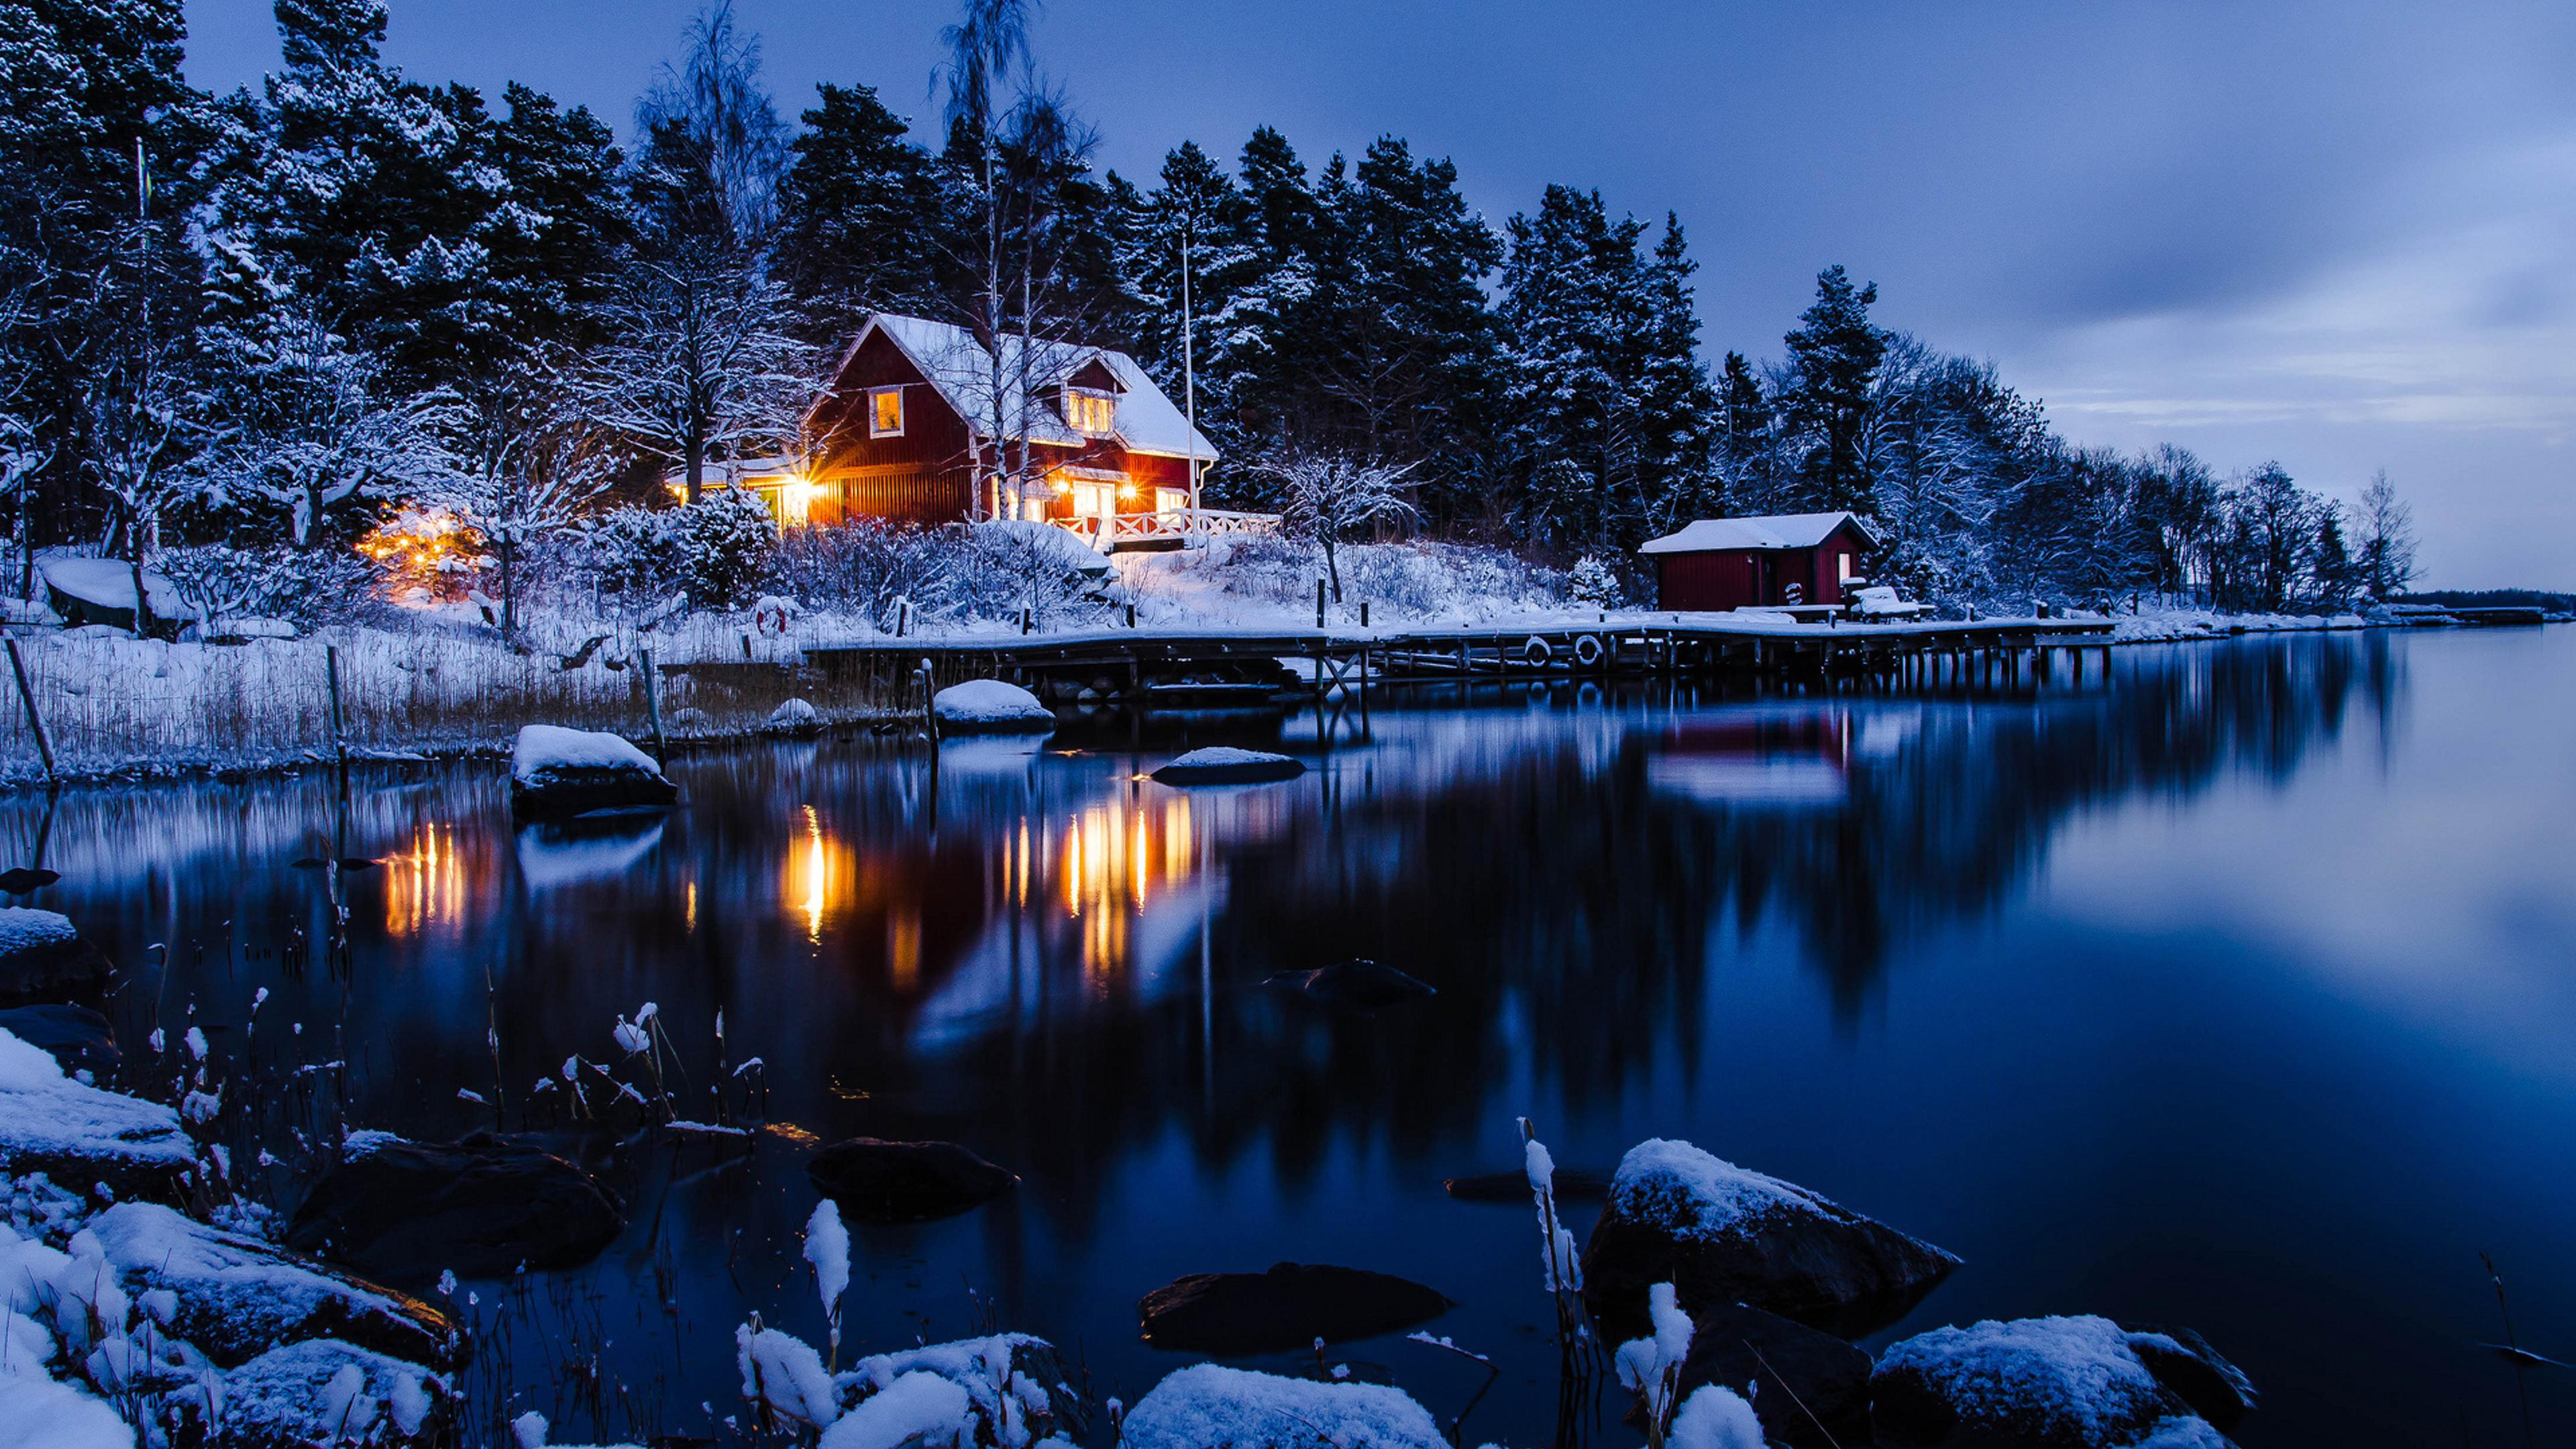 3d Cartoon Wallpapers Download Winter Holiday Night At The Cottage In The Mountain